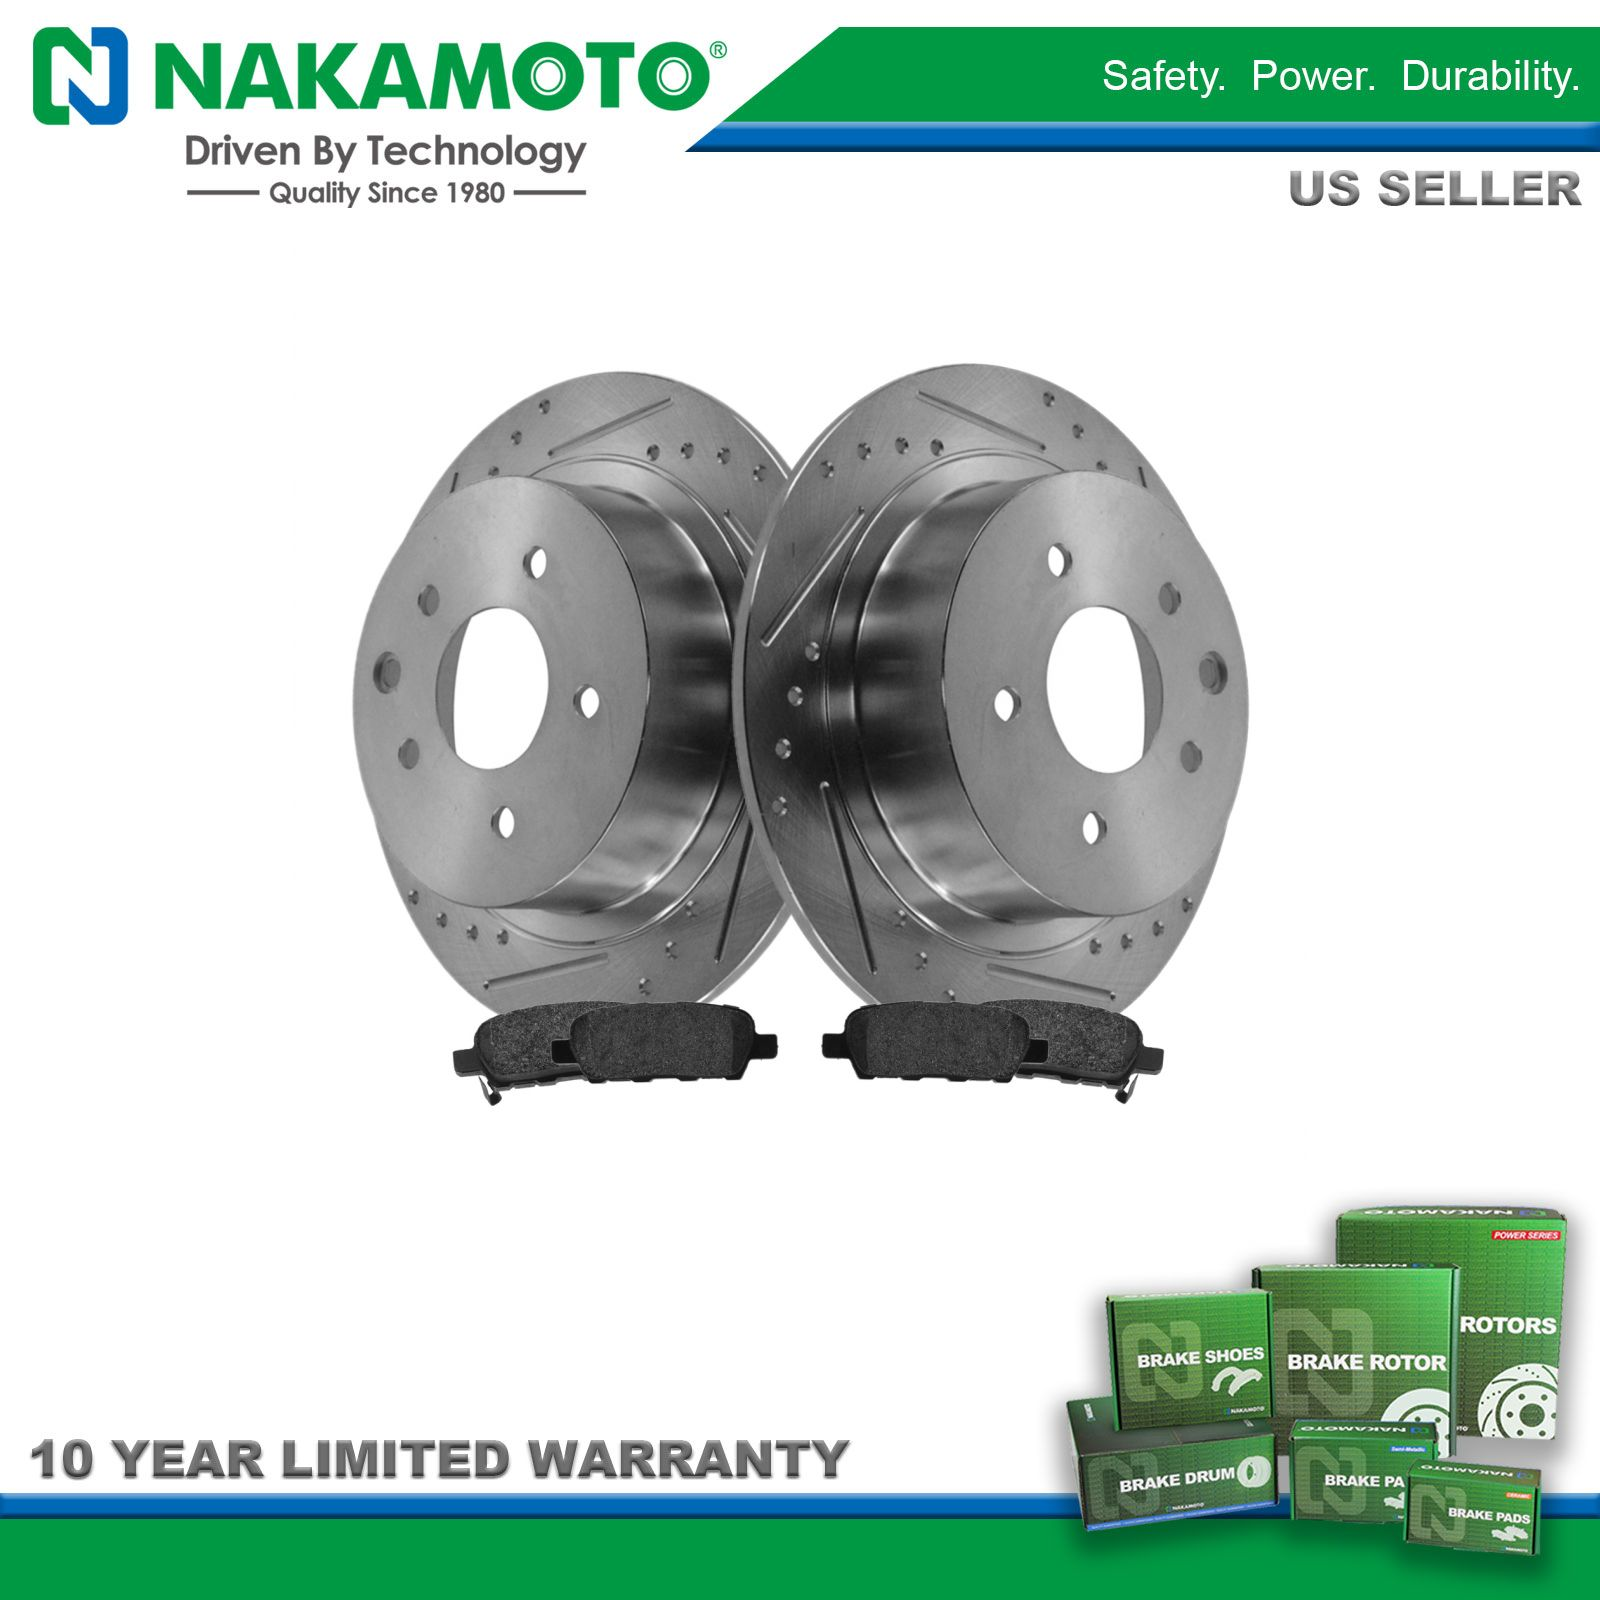 Nakamoto Performance Drilled Slotted Brake Rotor /& Posi Metallic Pad Front Kit